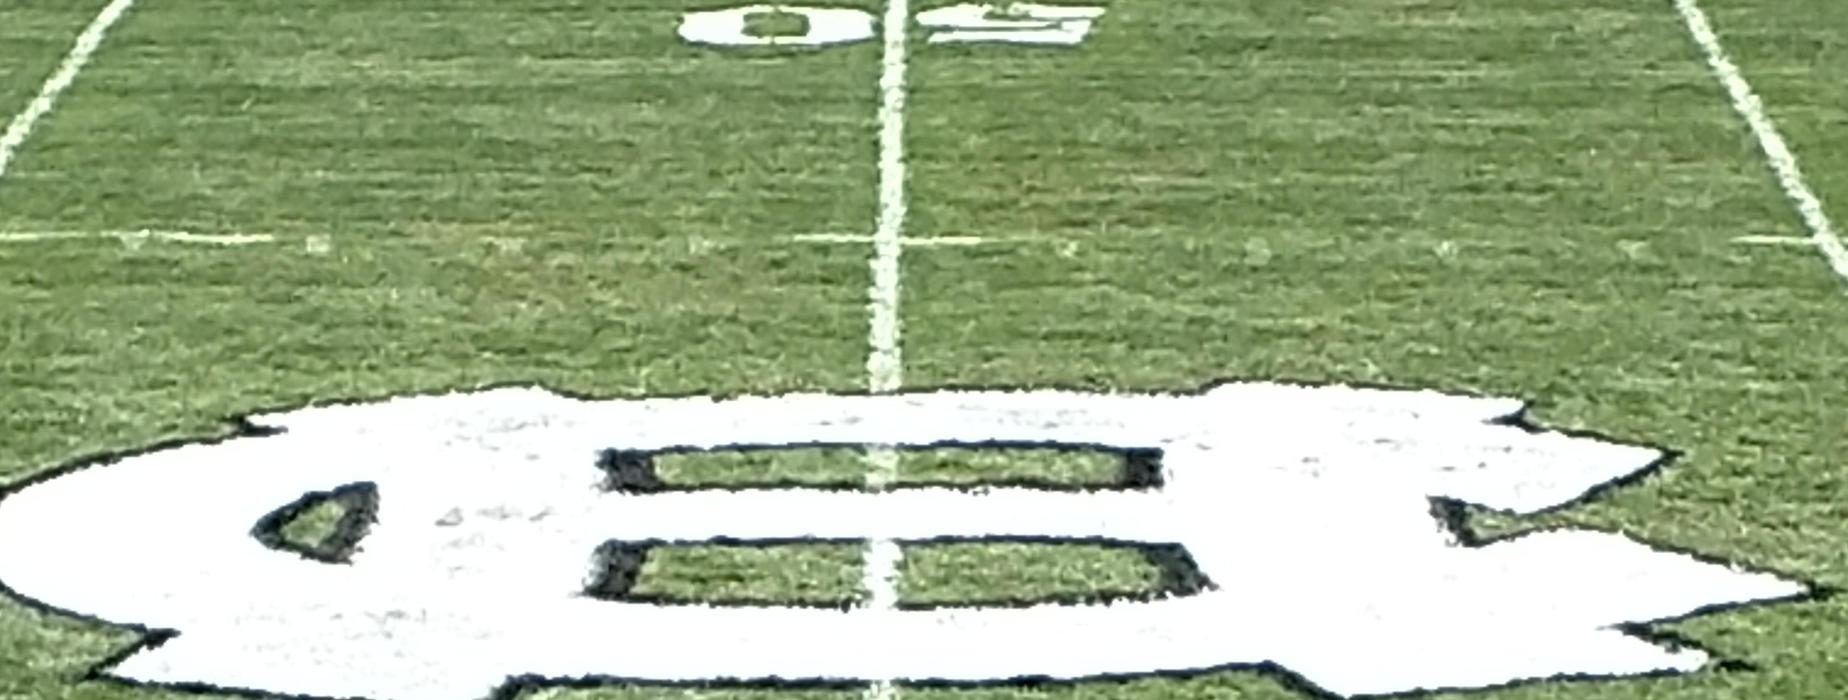 Homer-Center Logo on the 50 yard line on the football field.